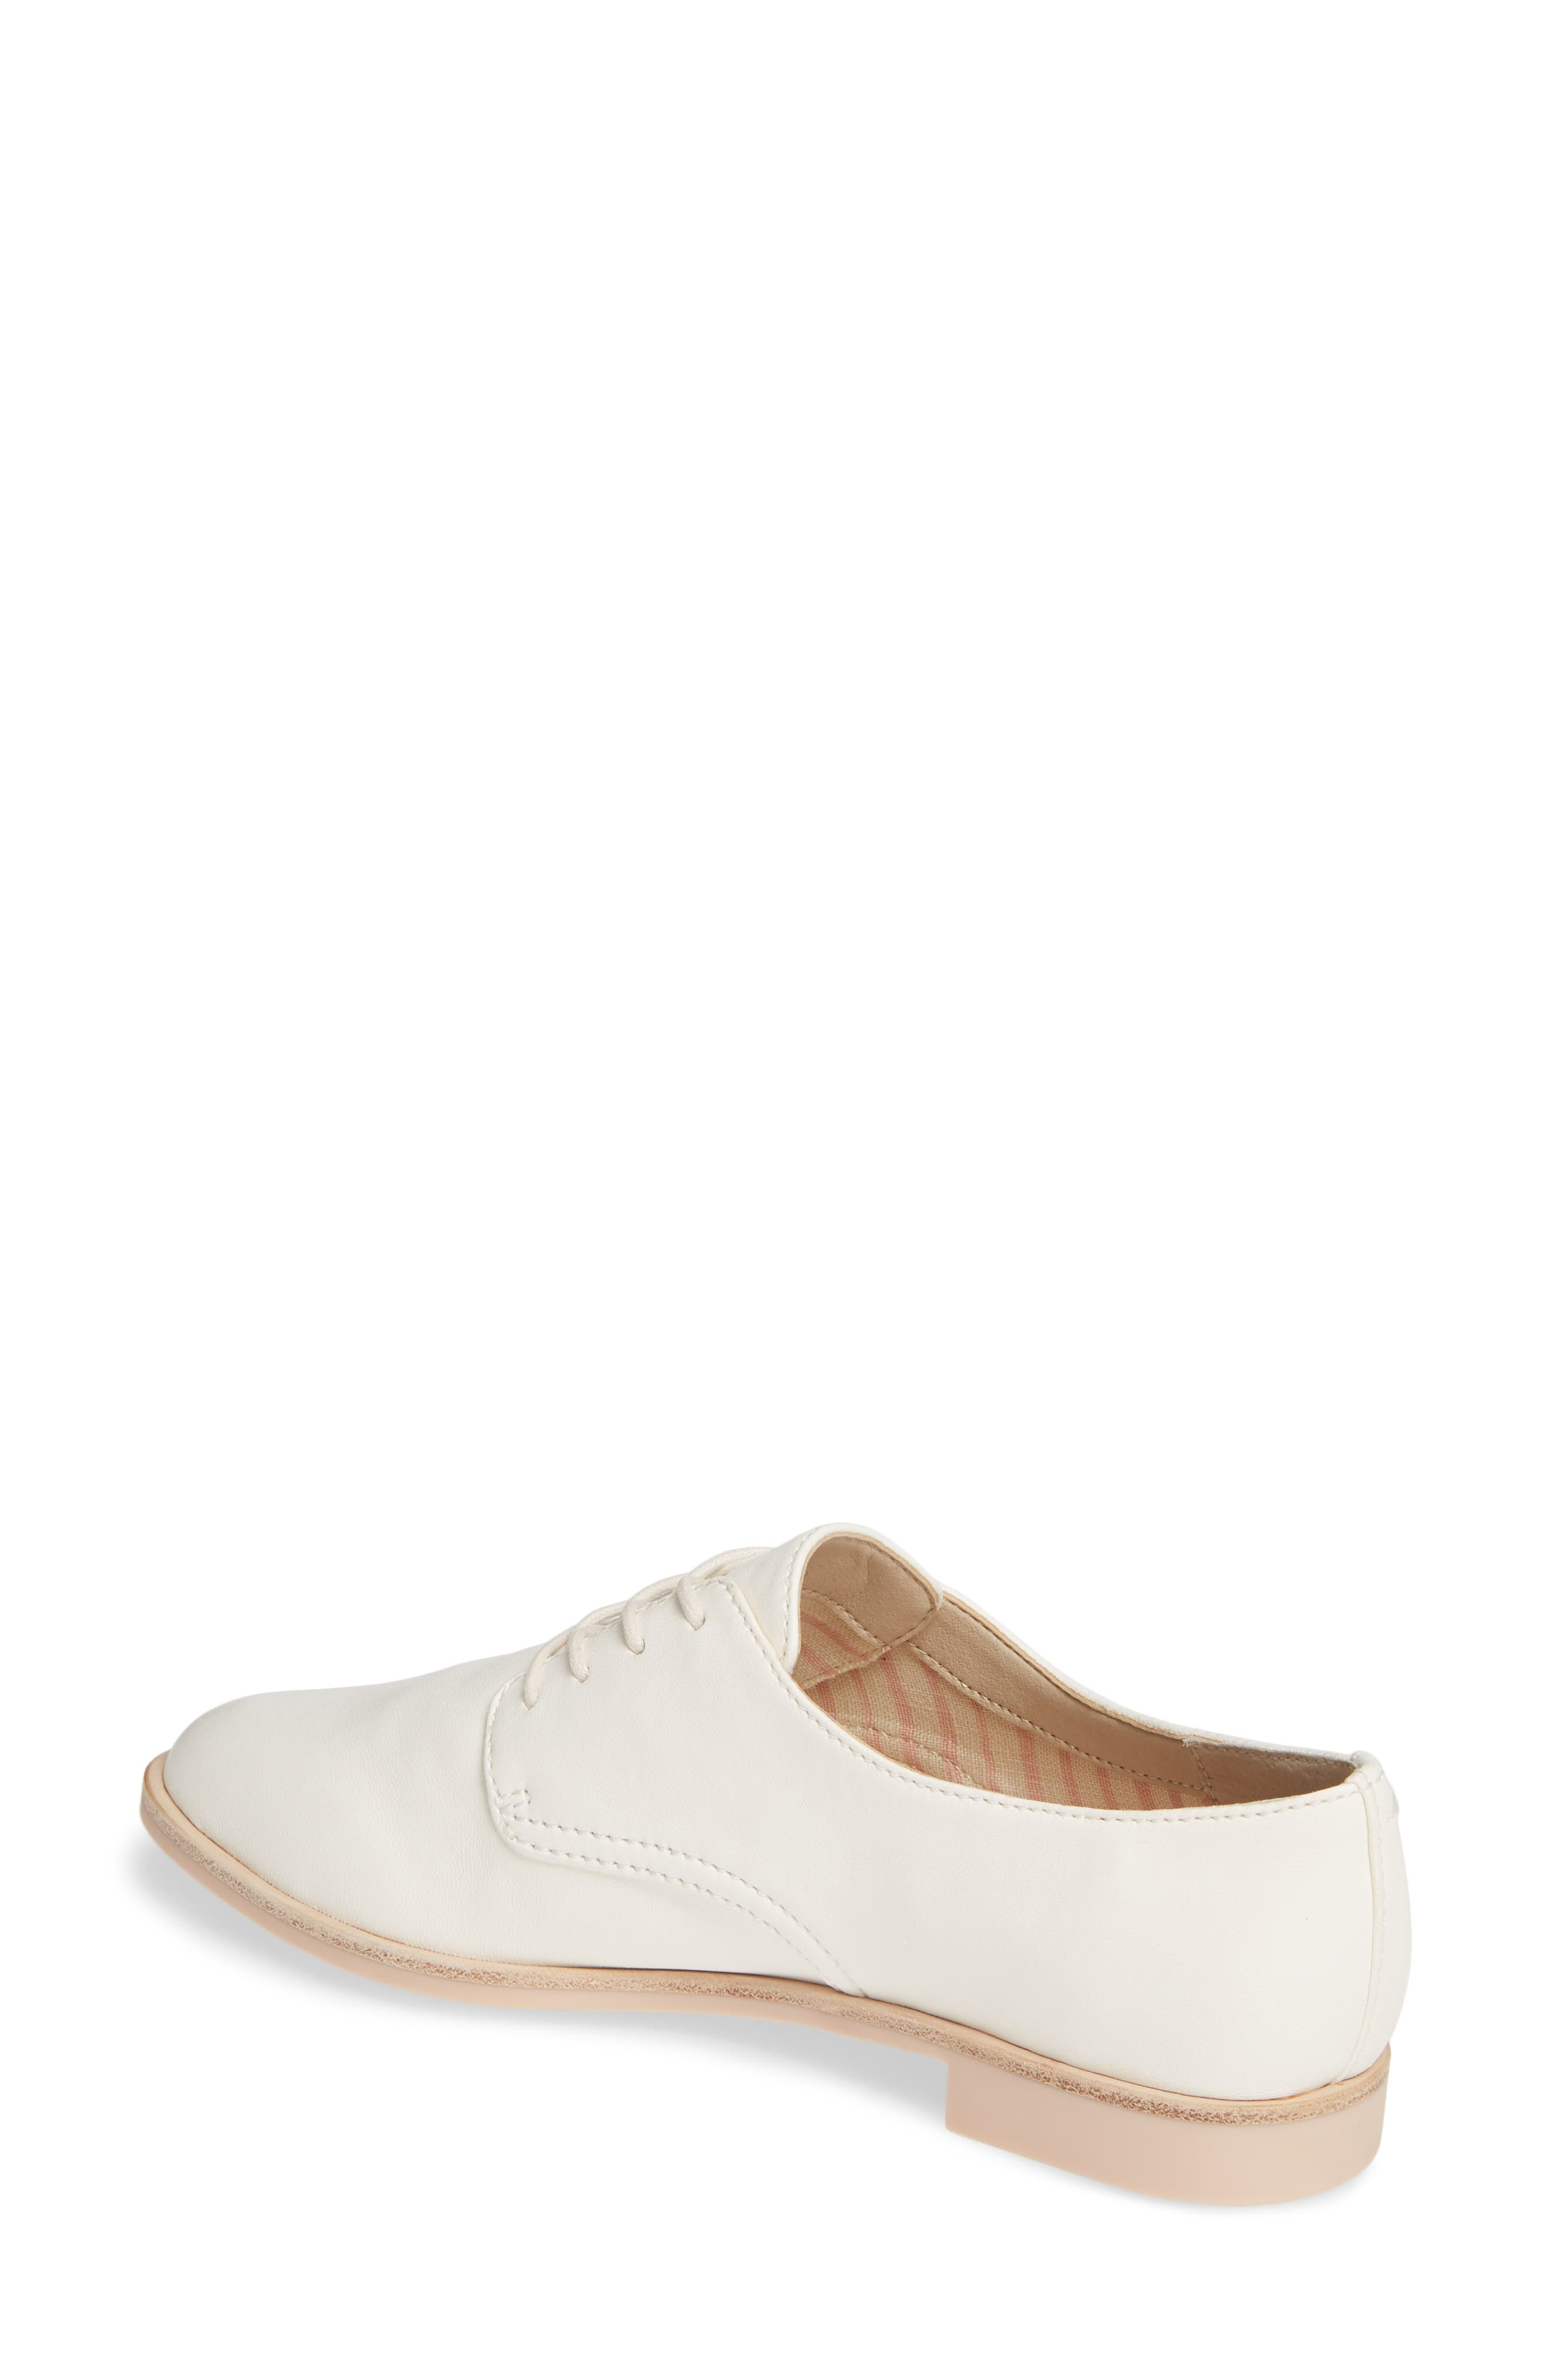 DOLCE VITA, Kyle Derby, Alternate thumbnail 2, color, OFF WHITE LEATHER